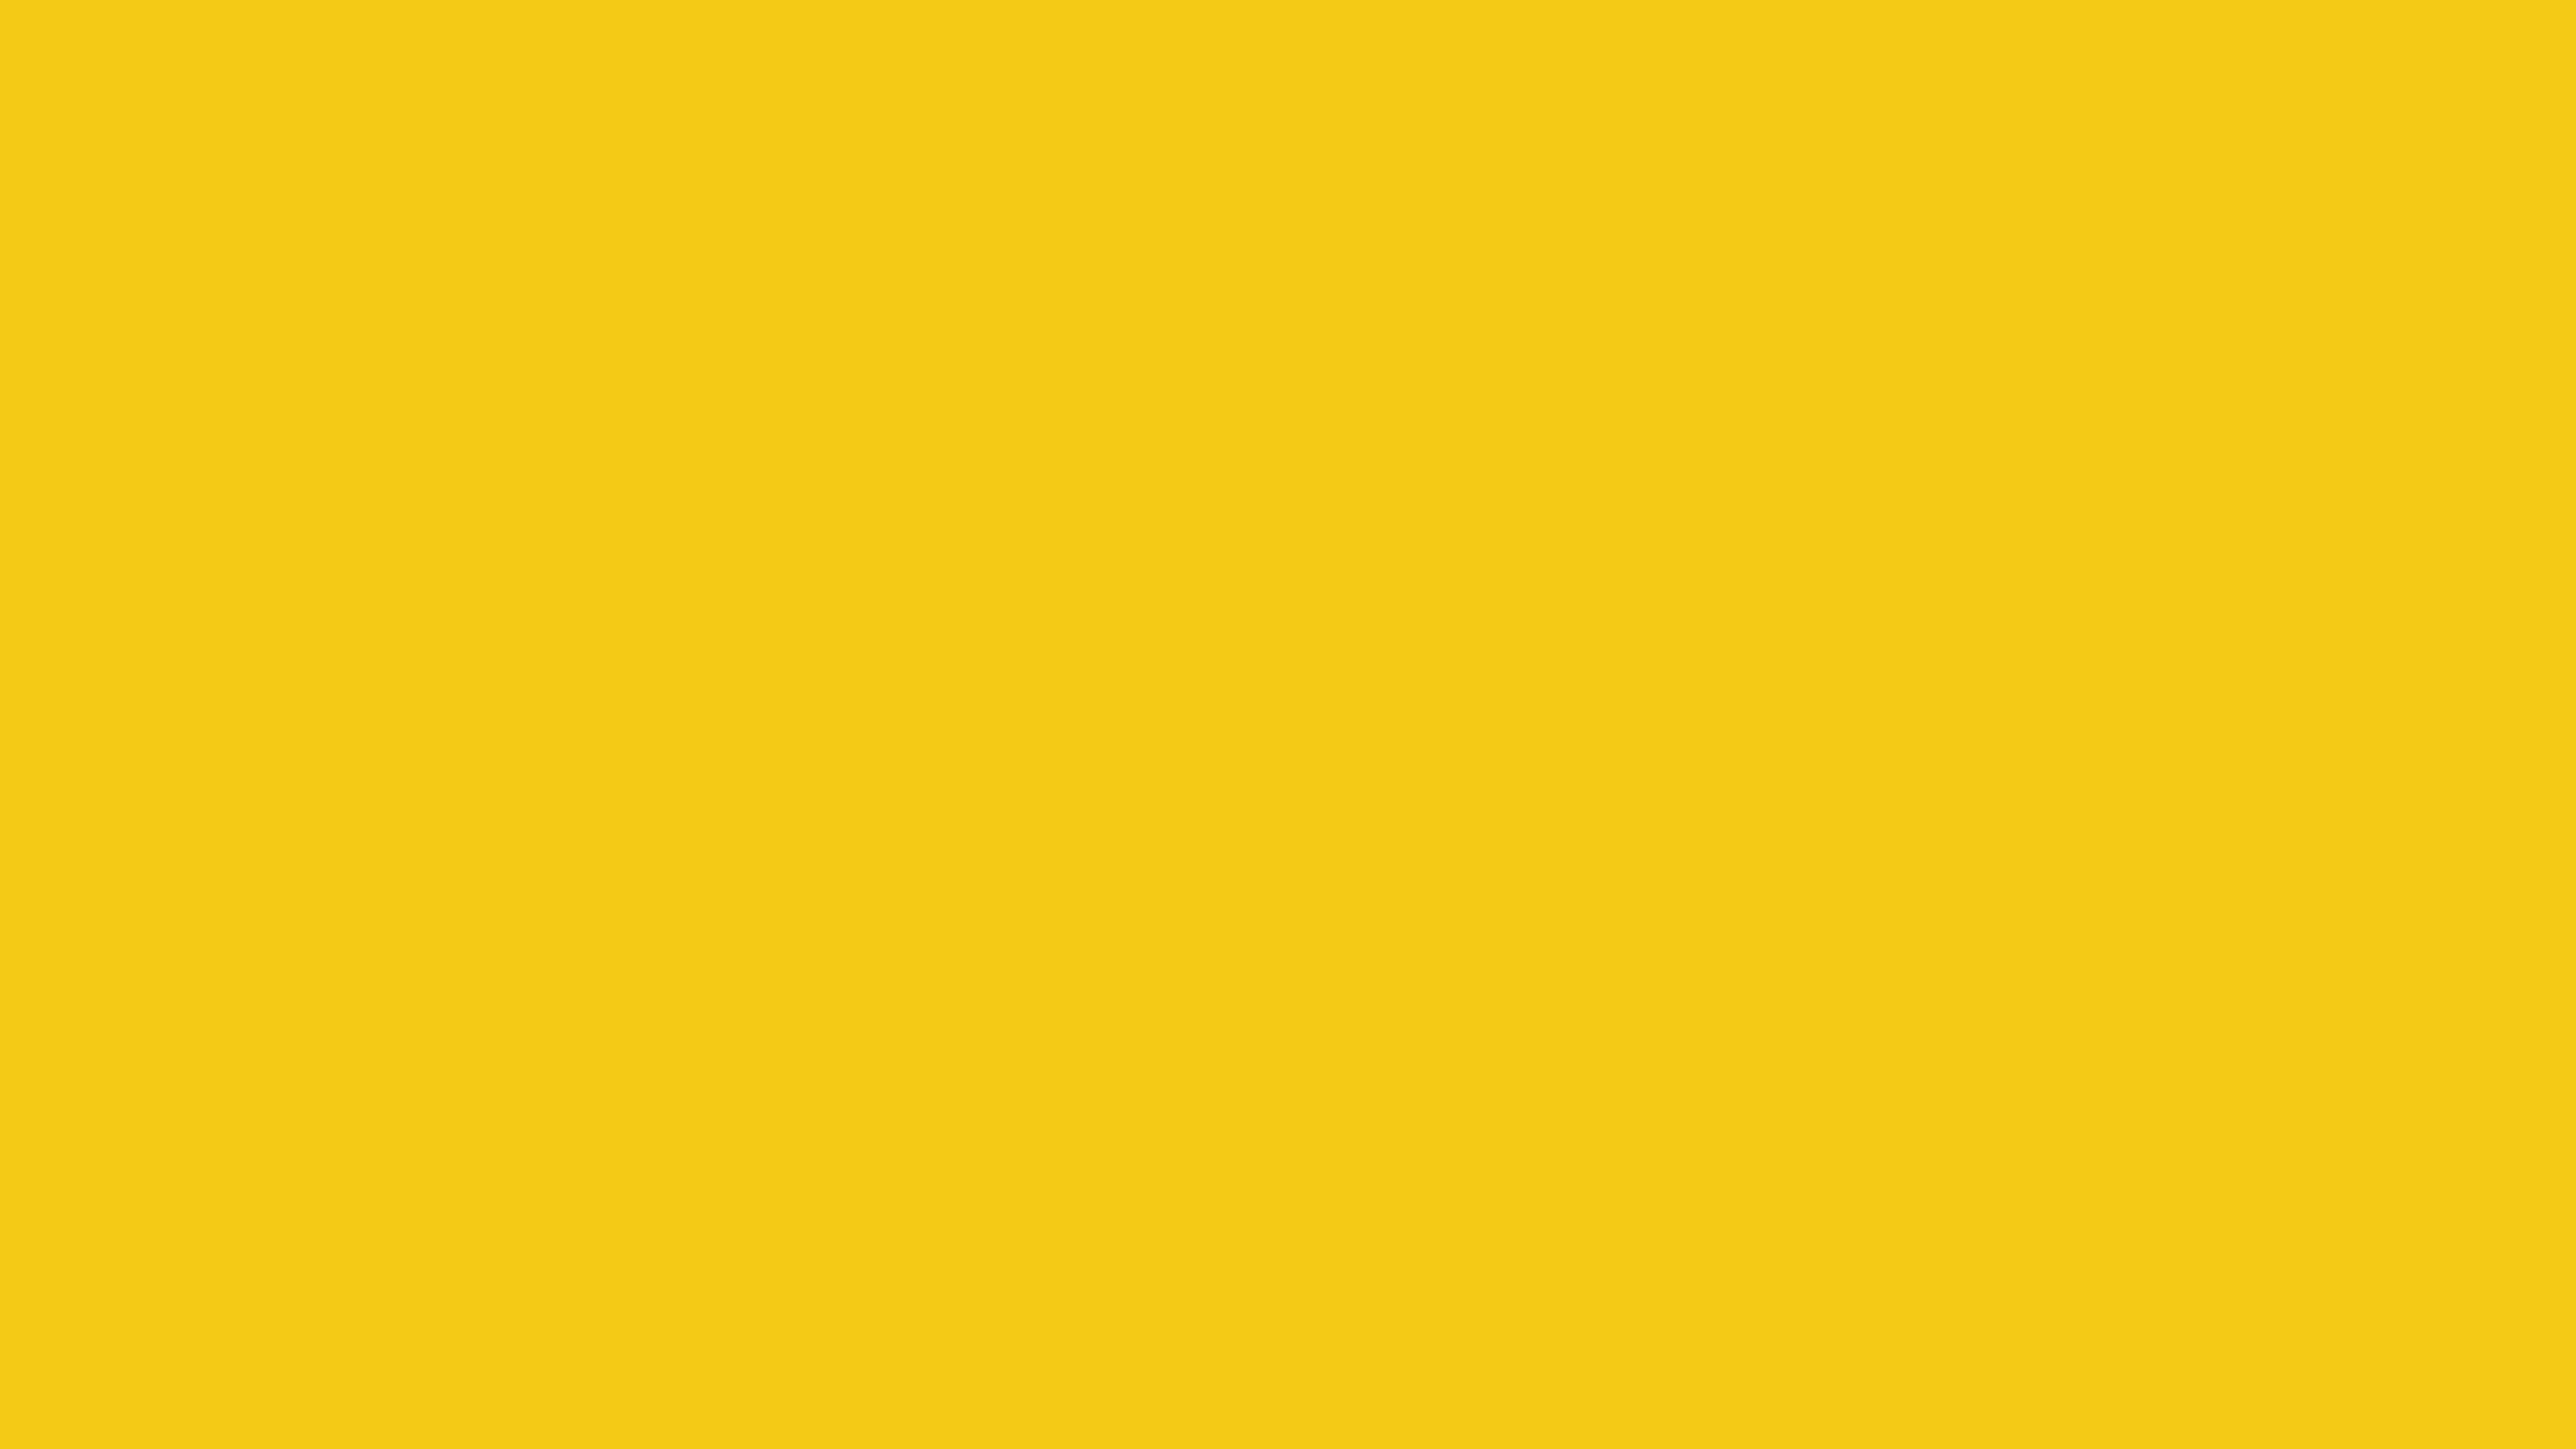 4096x2304 Jonquil Solid Color Background